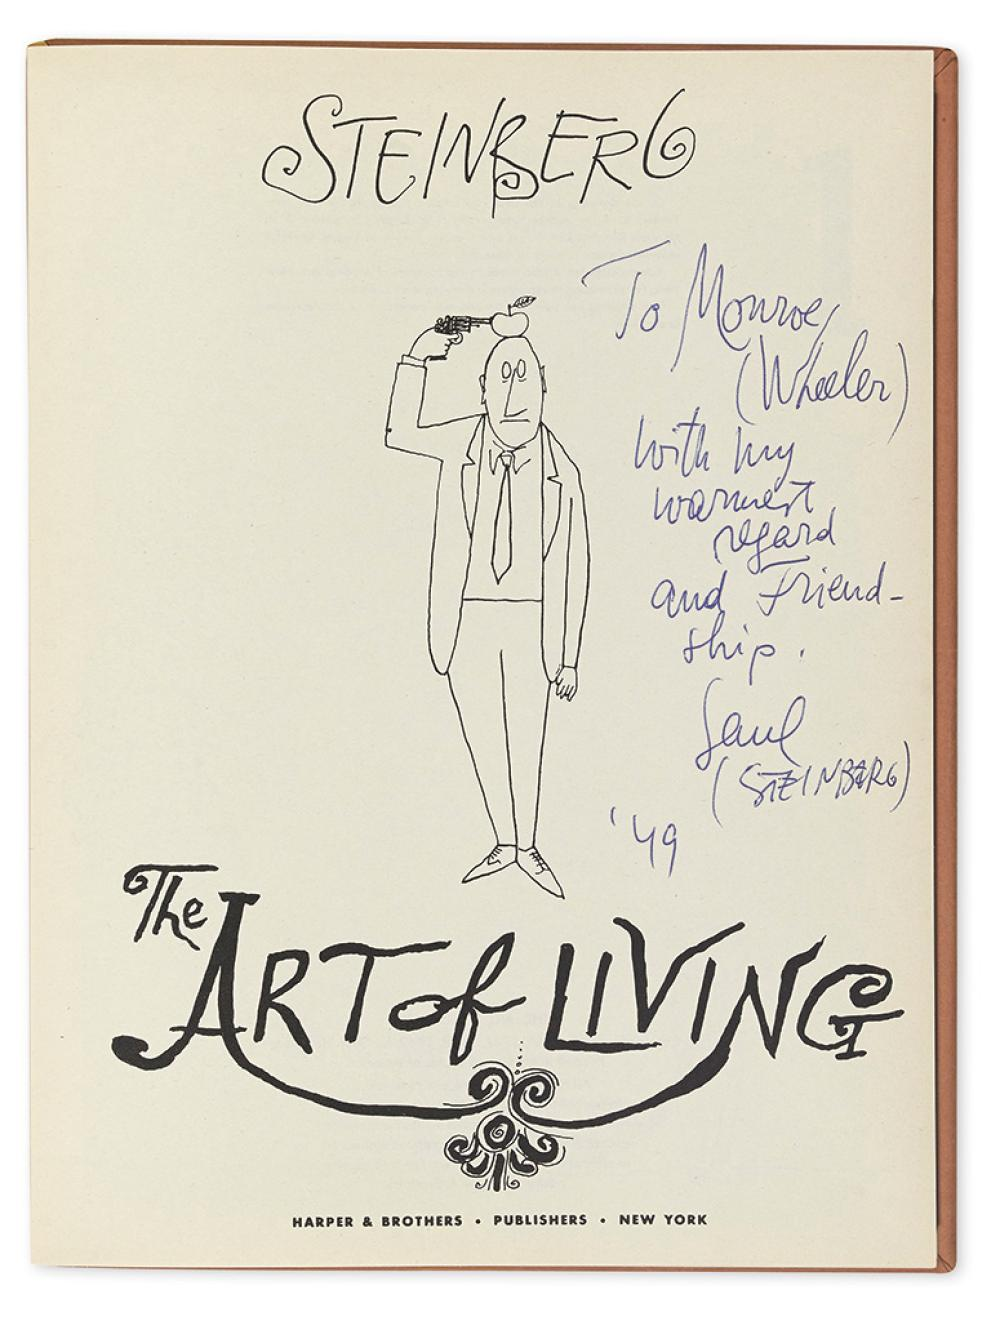 steinberg saul all in line the art of living